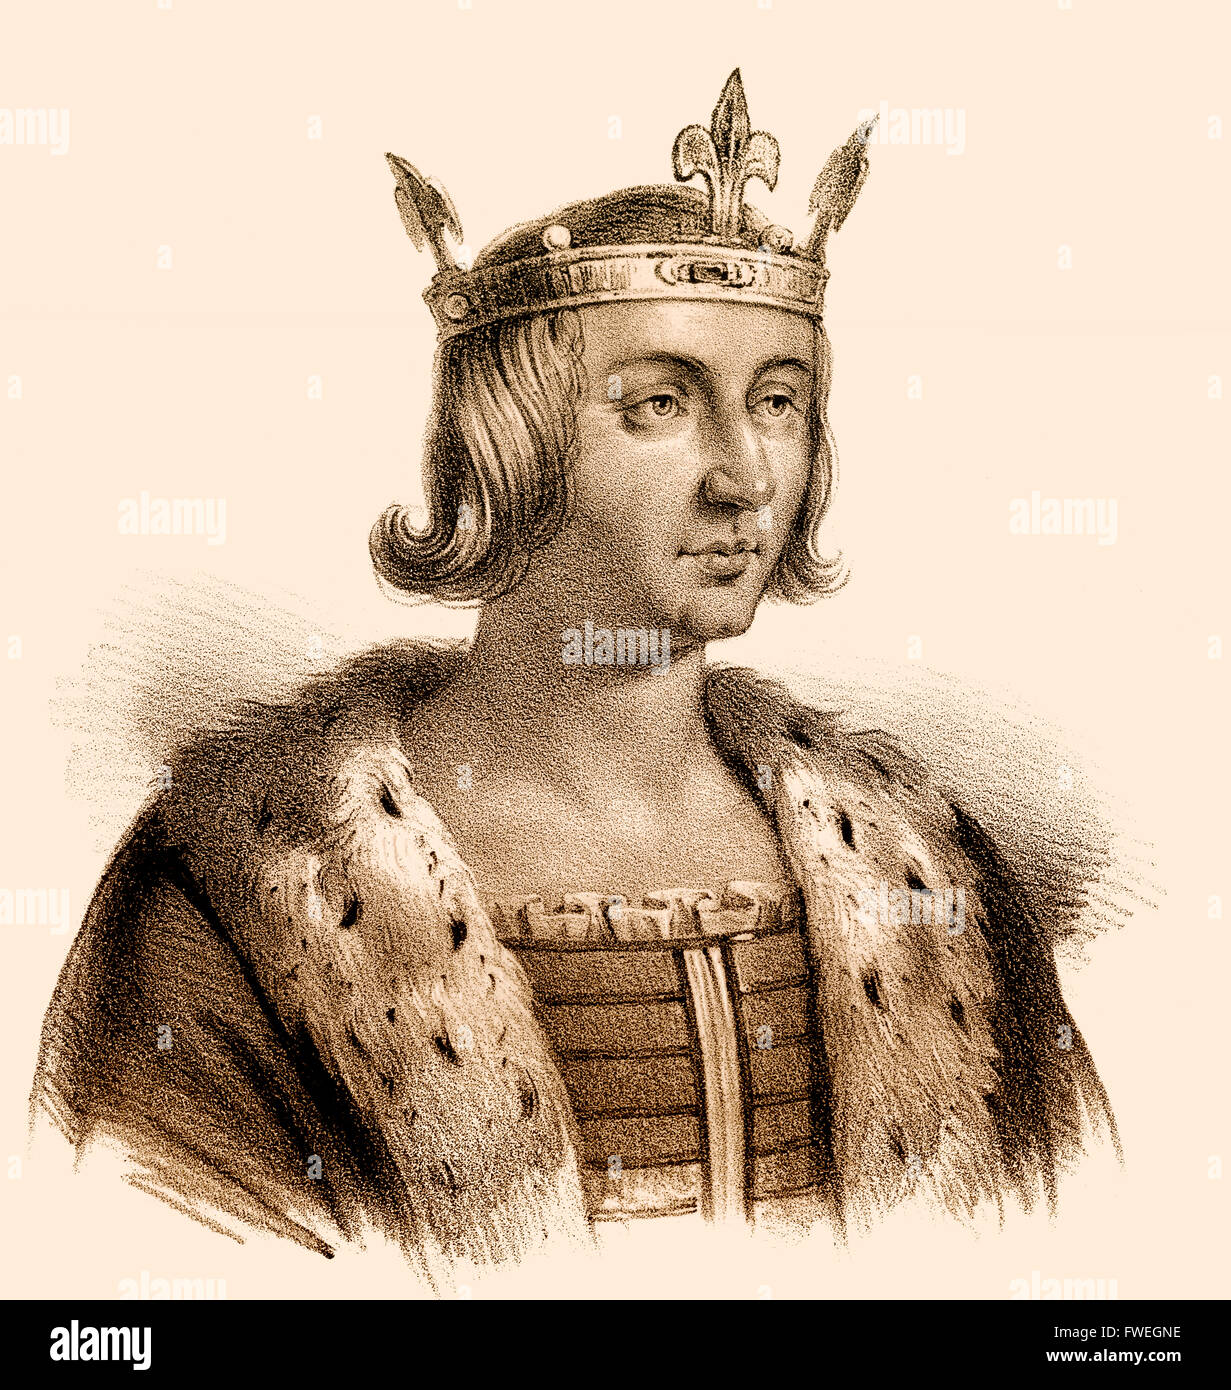 Louis X, Ludwig X., Louis X le Hutin, 1289-1316, called the Quarreler, the  Headstrong, or the Stubborn, King of Navarre as Louis